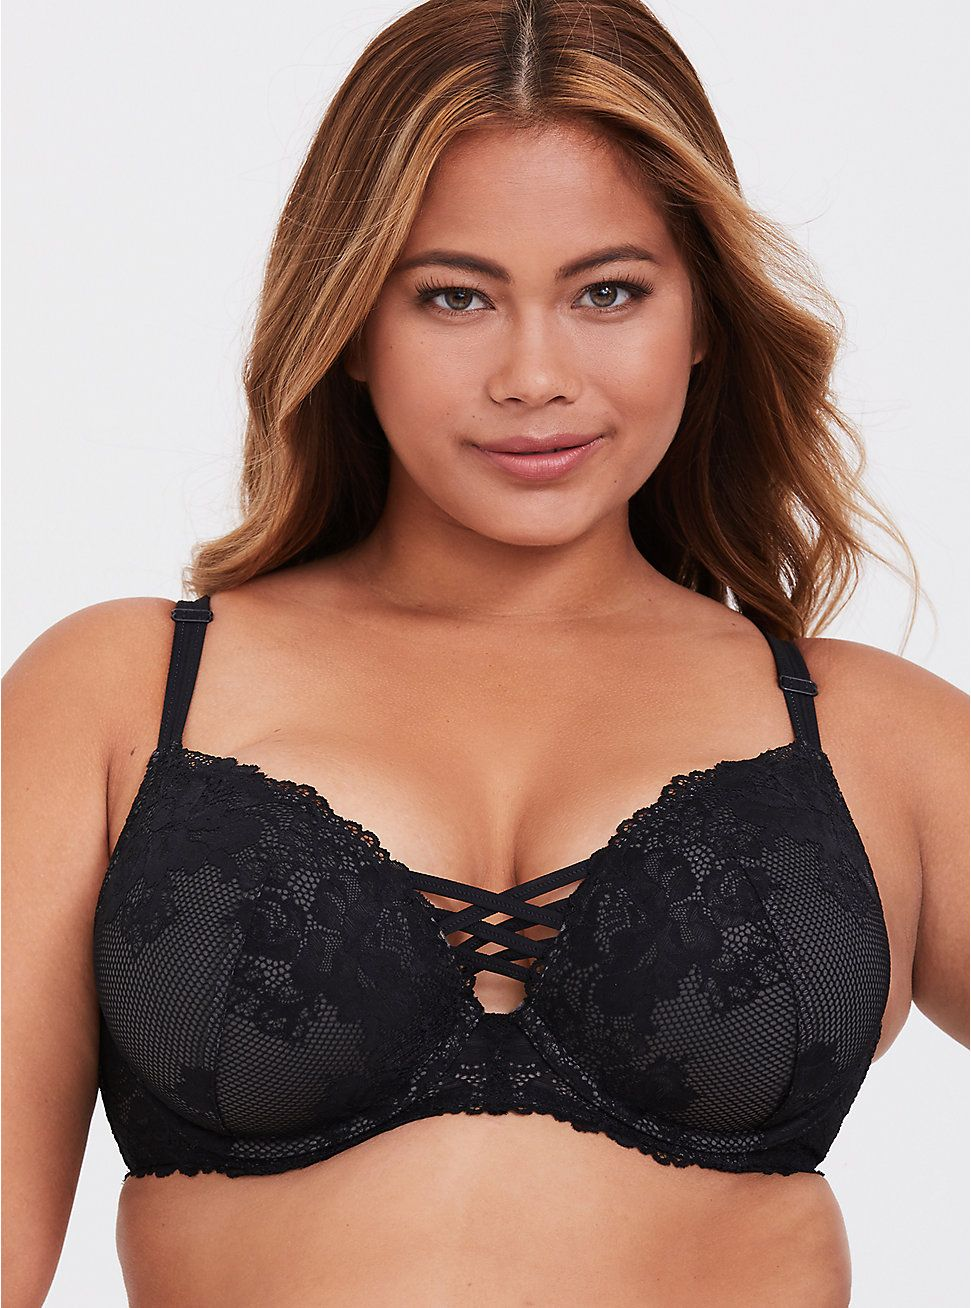 fa0fd8f1a0746 Black   Silver Corset Push-Up Plunge Bra in 2019